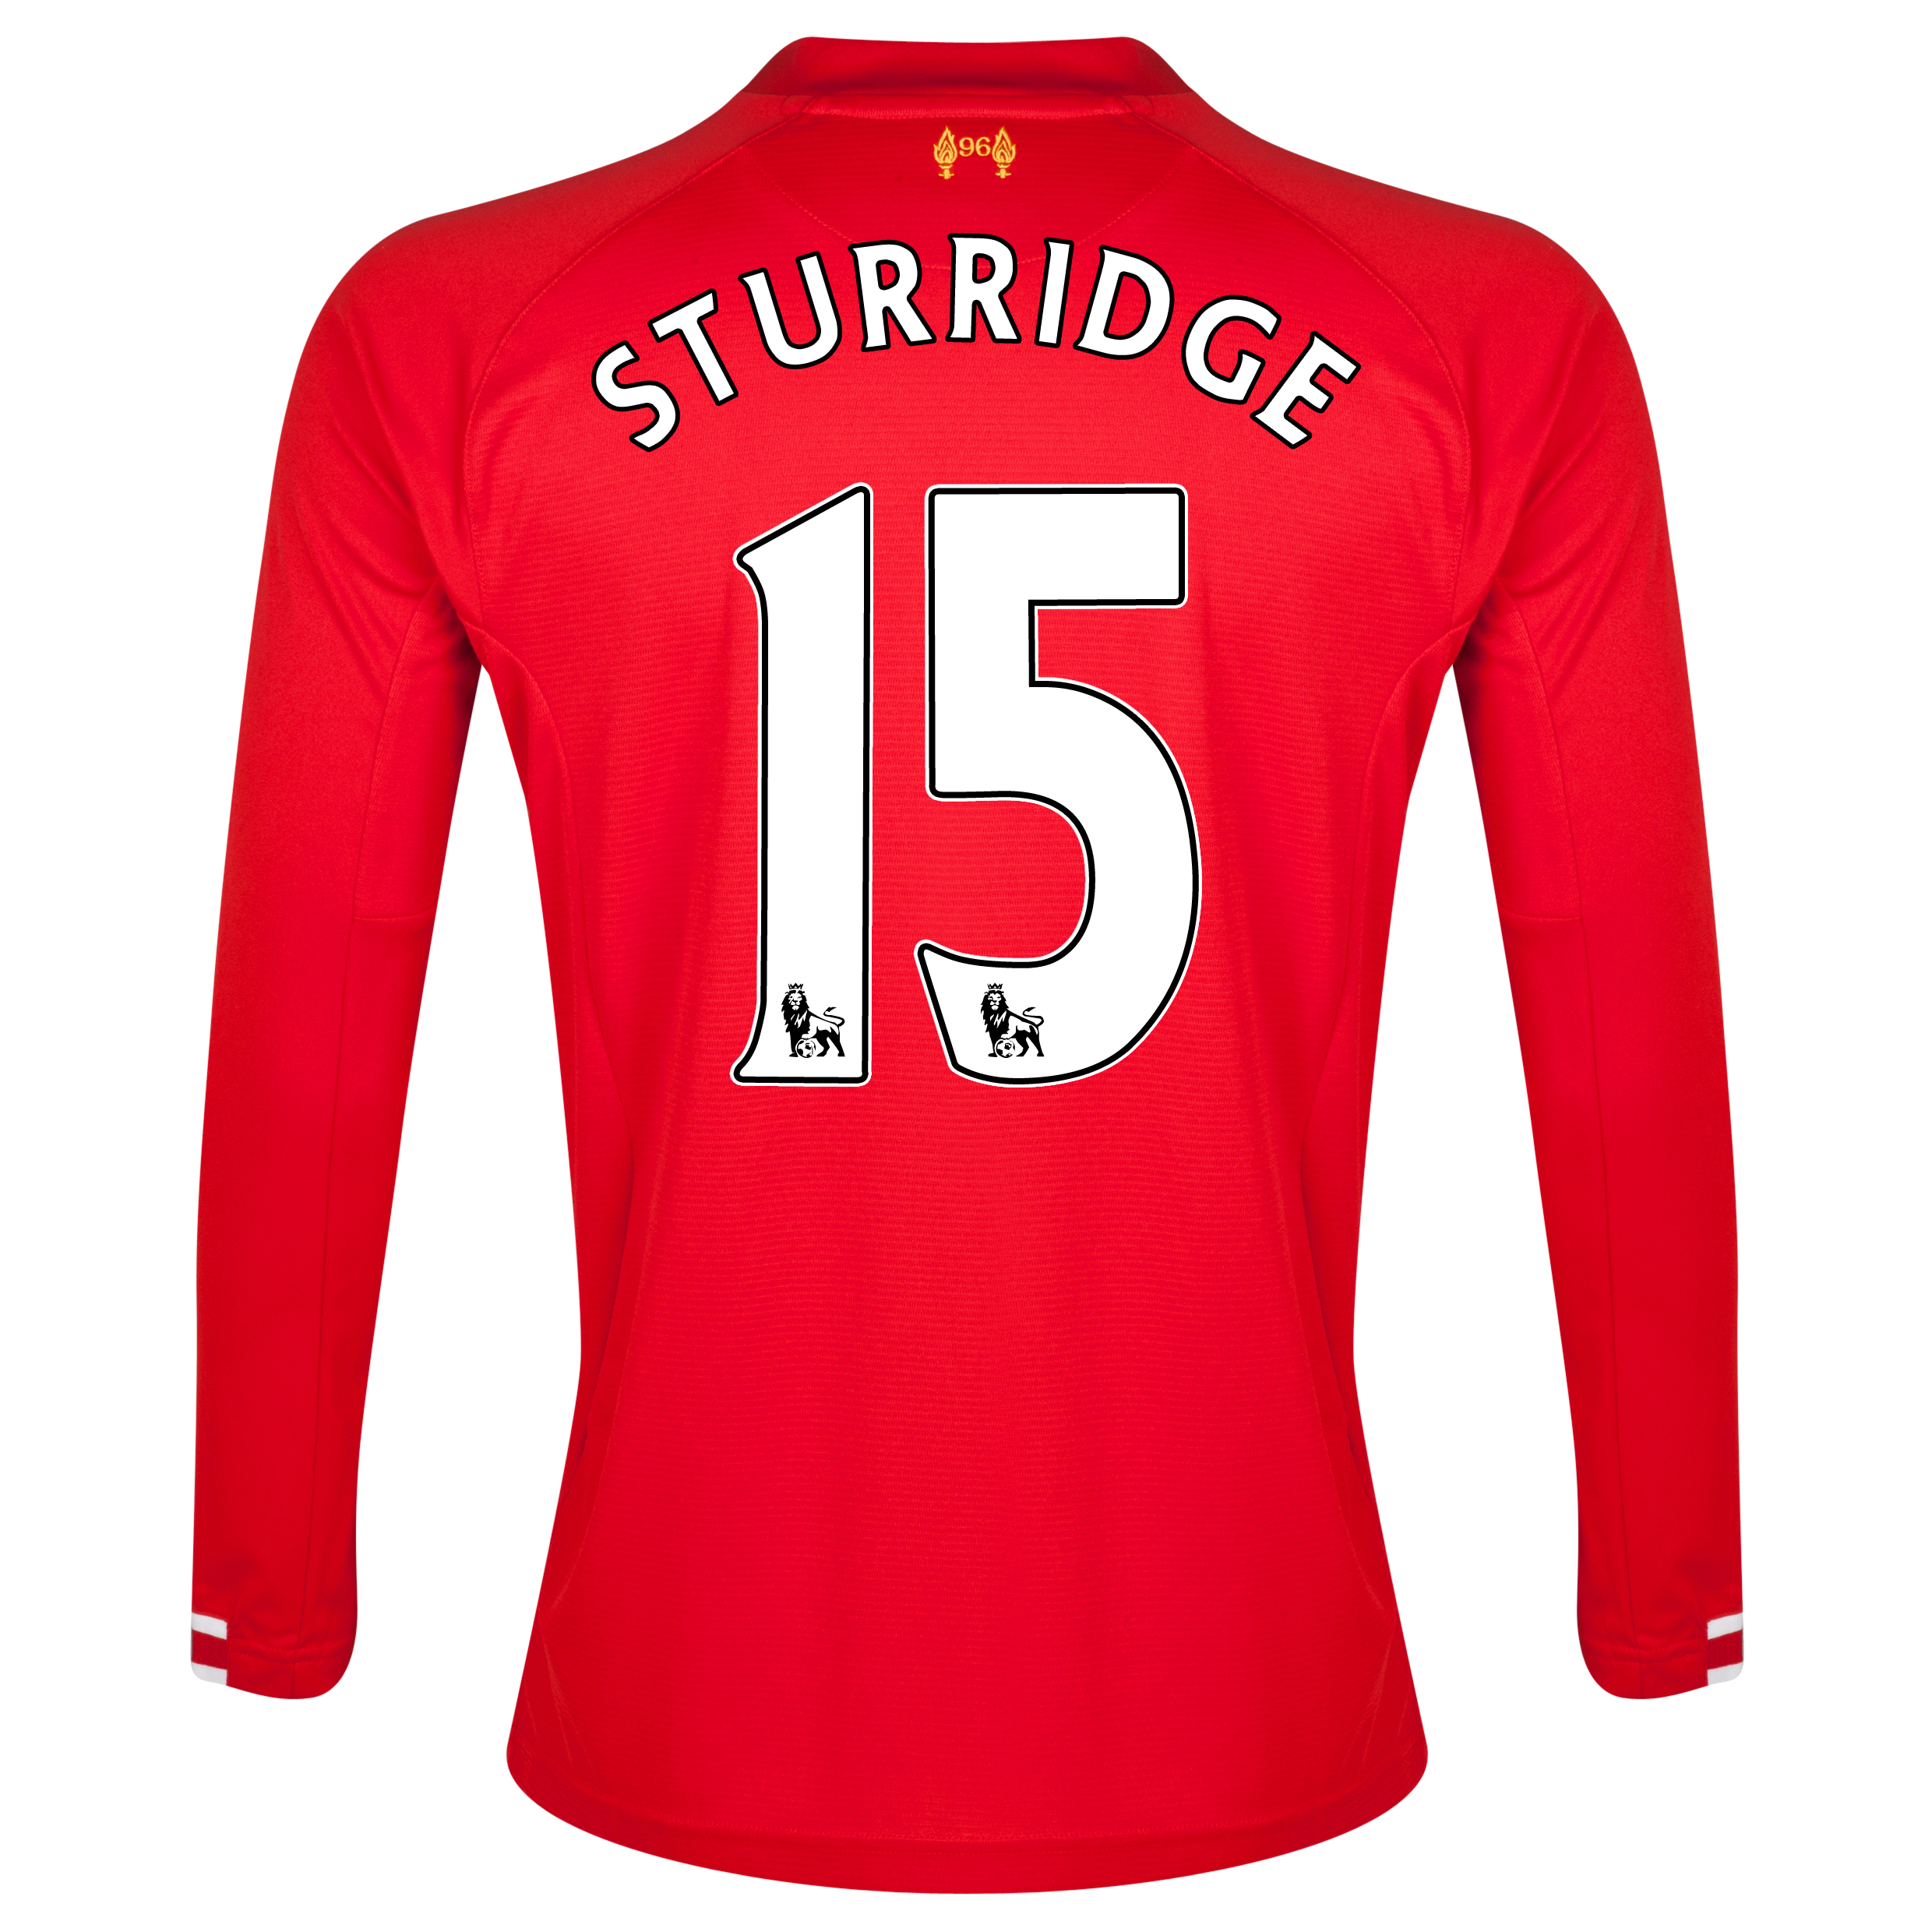 Liverpool Home Shirt 2013/14 Long sleeve with Sturridge 15 printing